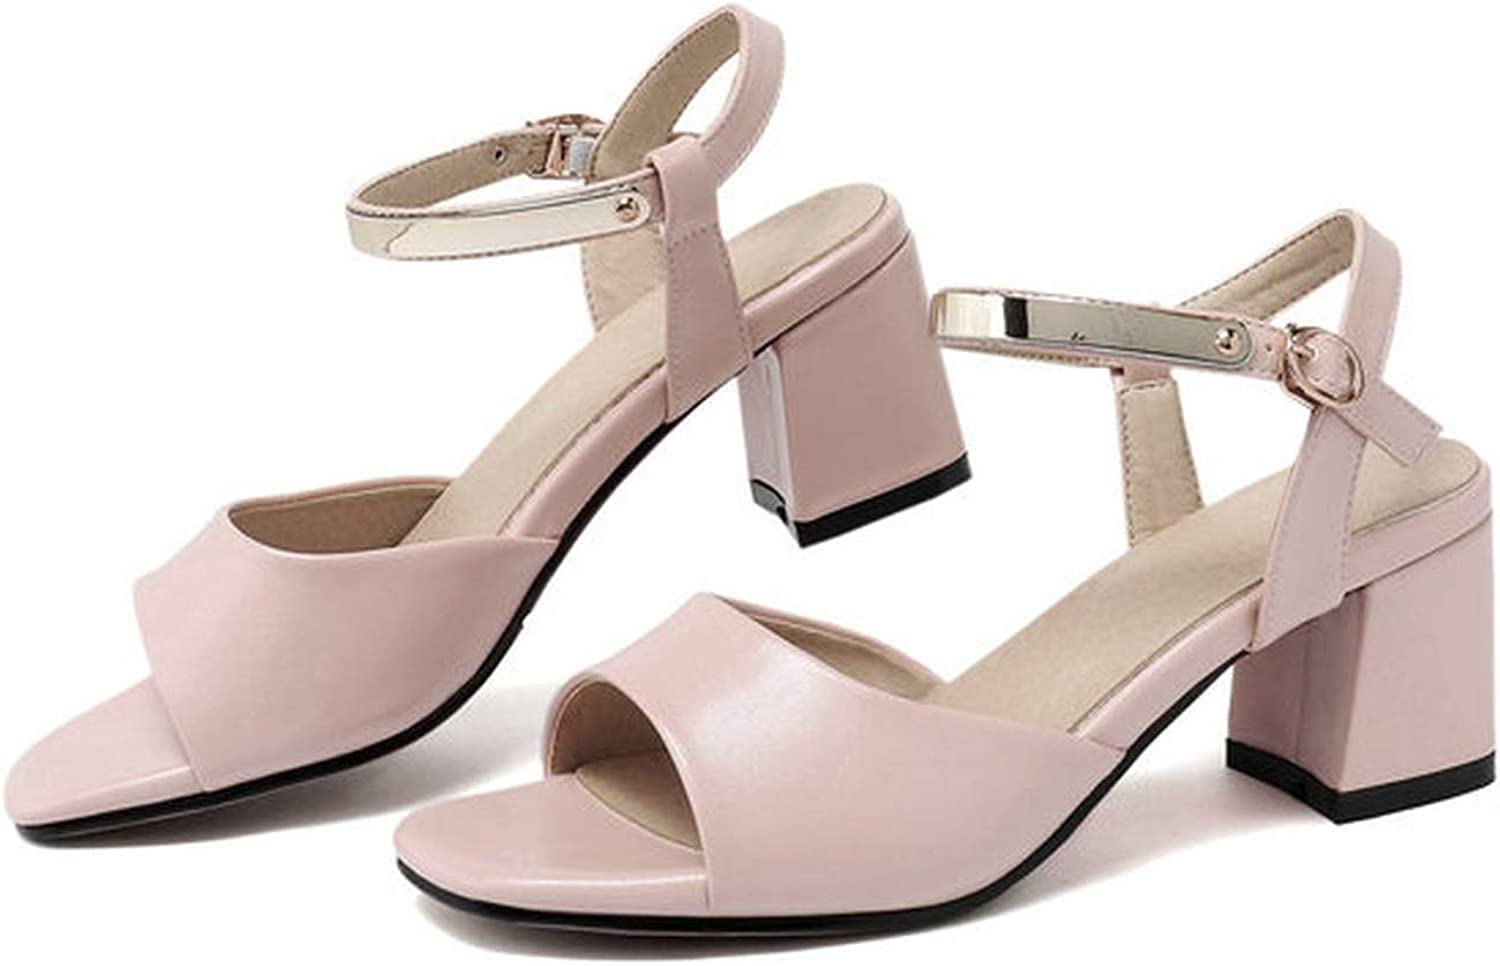 Women Sandals Pu Leather Metal Decoration Square Open-Toed Buckle Elegant Square High Heel